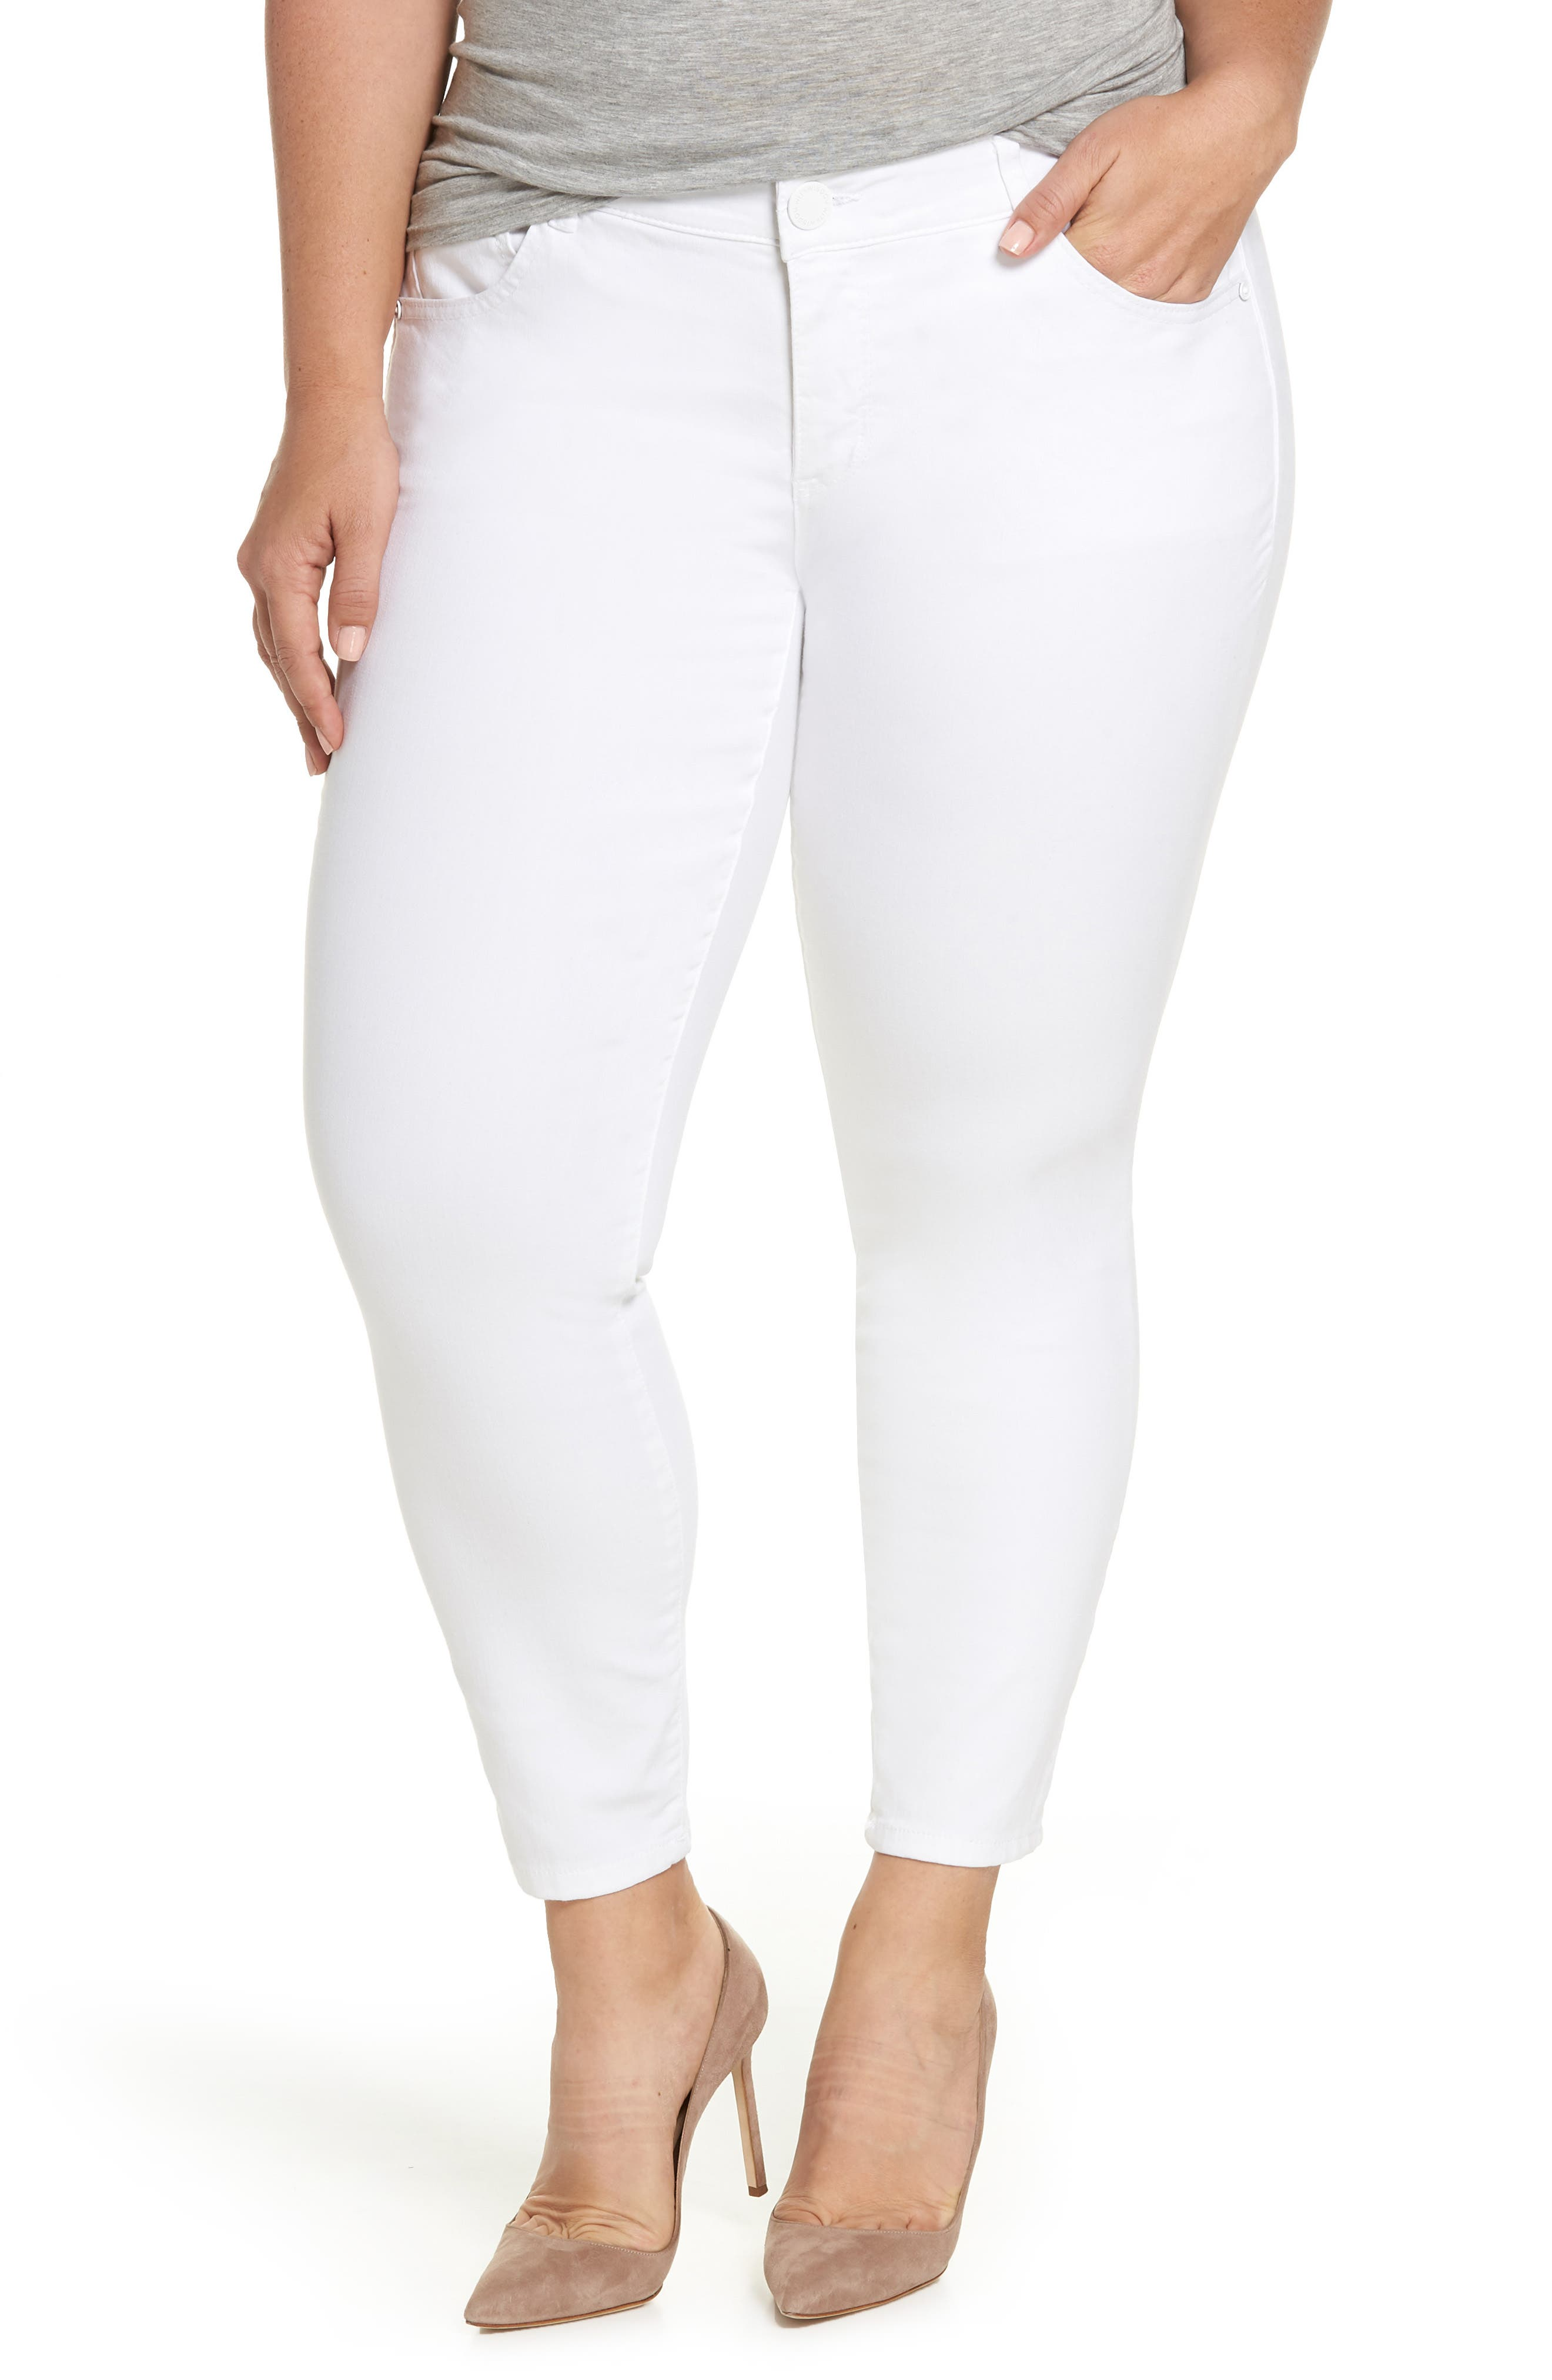 Ab-solution Ankle Skimmer Jeans,                         Main,                         color, Optic White